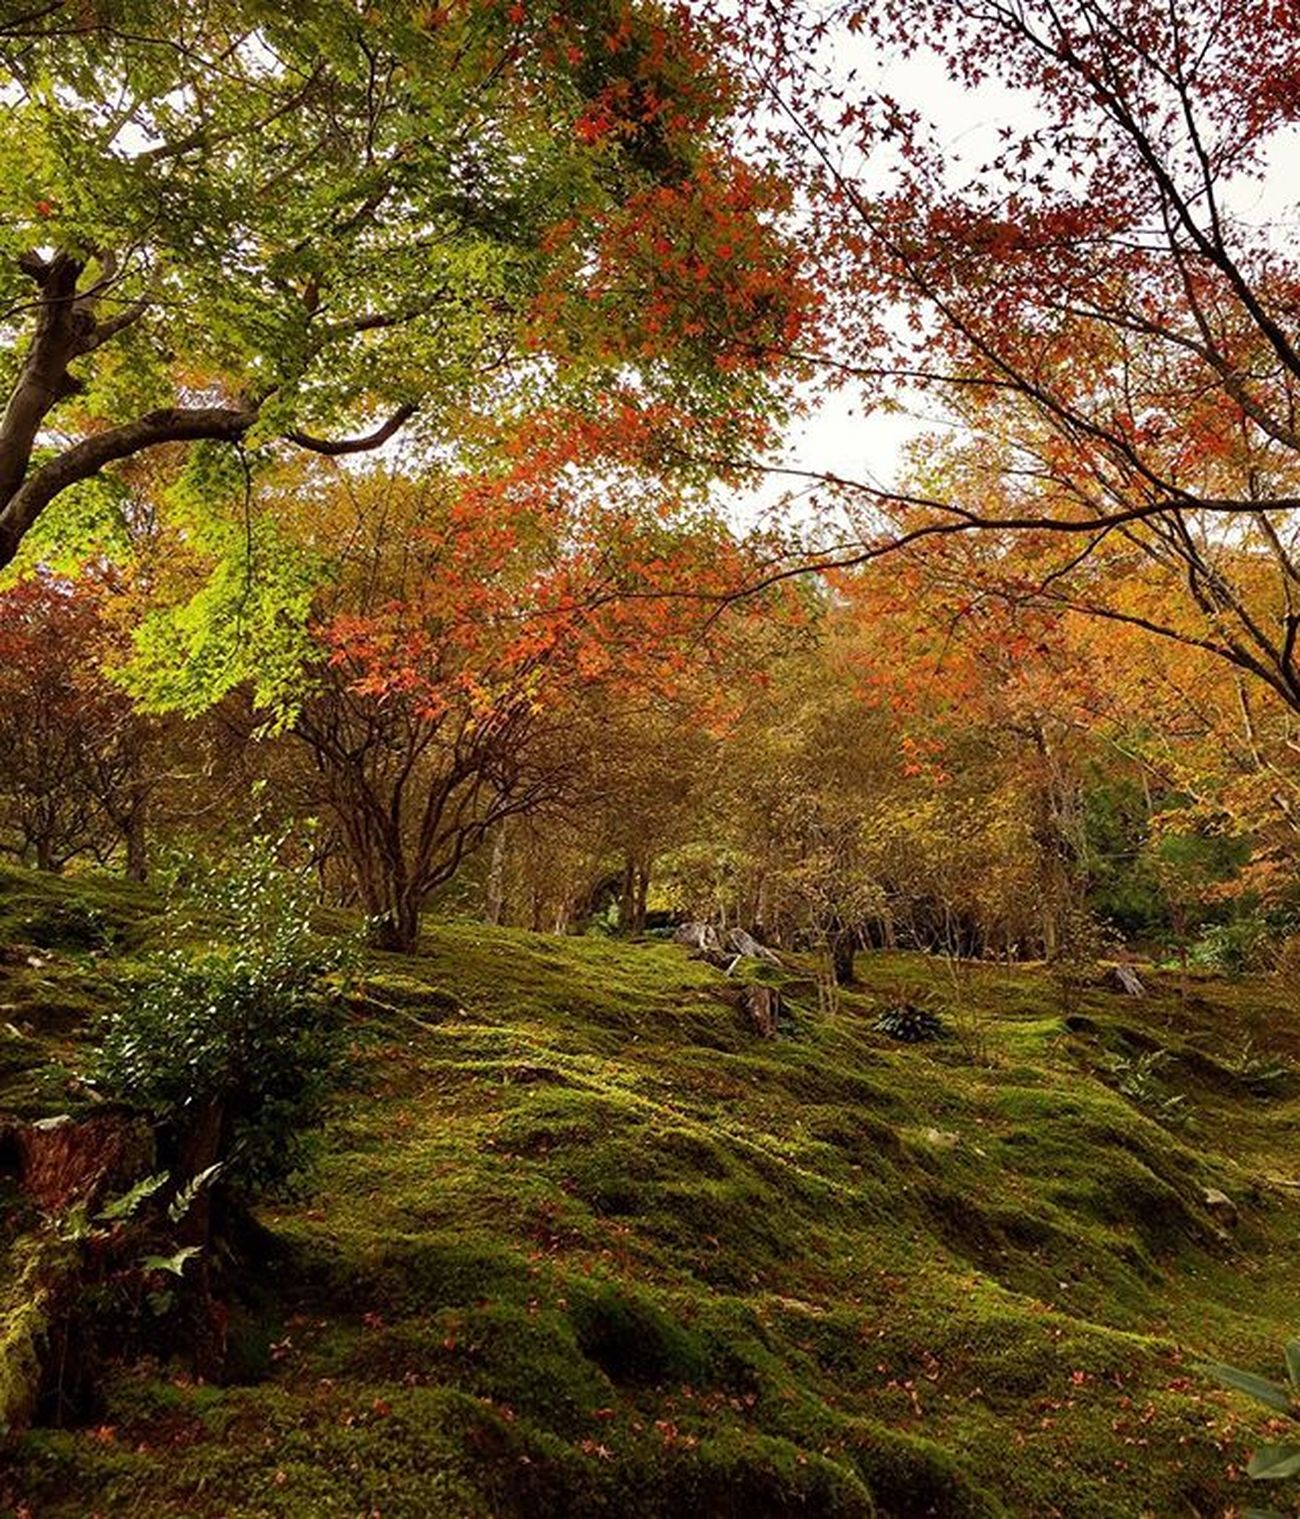 The grounds of Tenryu-ji Temple .. ✌🏼️ Good day everyone ✌🏼️ Autumn Japan Kyoto All_shots Landscape Landscape_lovers Landscape_captures Landscapestyles_gf Landscapes Hdr_pics Love Phototag_it Photooftheday Master_pics Master_shot Ig_sharepoint Ig_world Igs_today Instagood Instamood Globalcapture Insta_worldz Travel Holiday Nature naturelover rsa_nature warm beautiful instagram